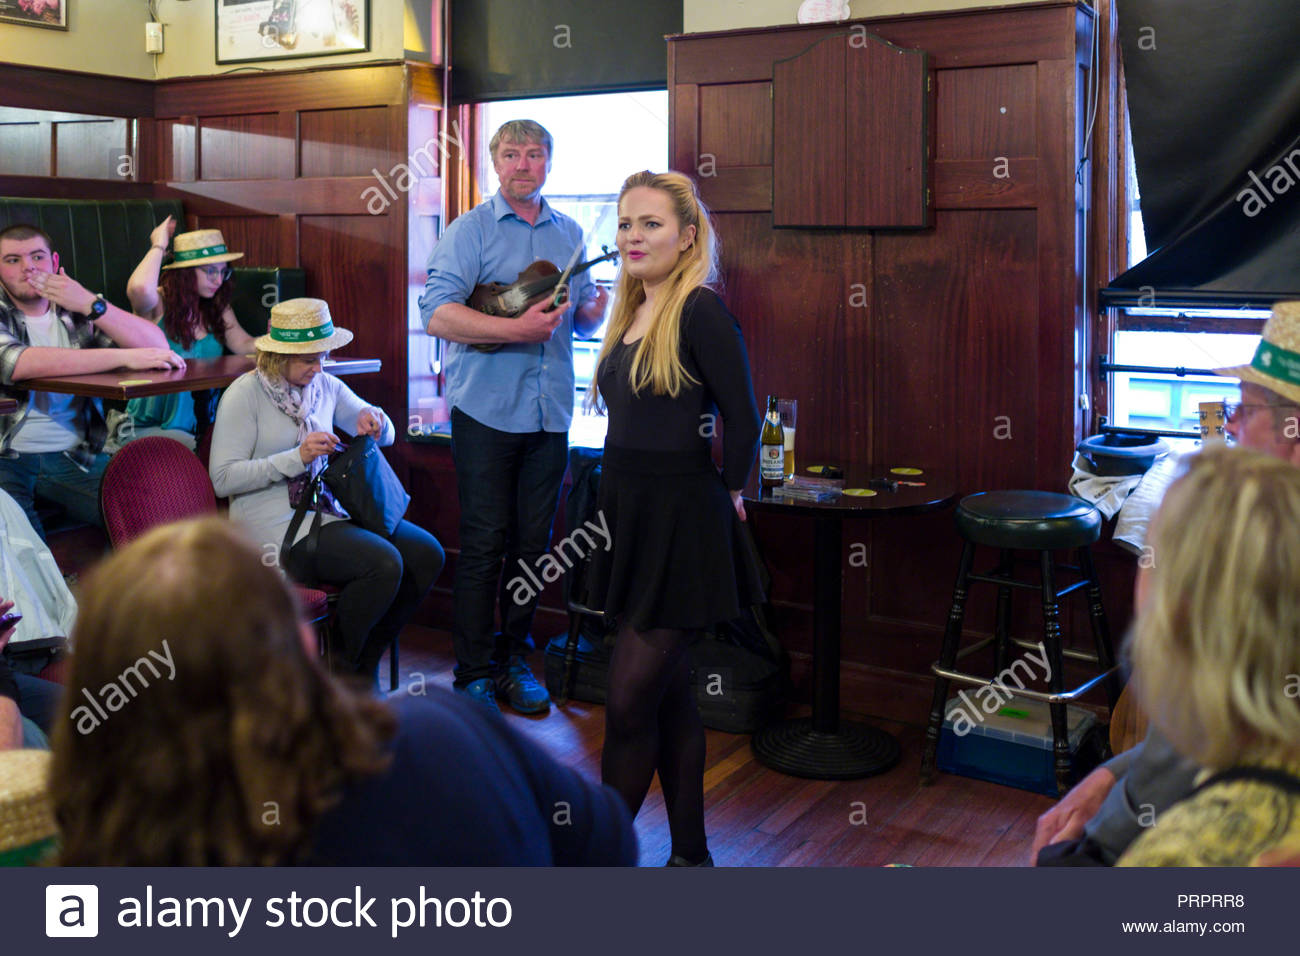 Young woman demonstrating traditional Irish dance during the musical pub crawl tour, North City, Dublin, Leinster, Ireland - Stock Image